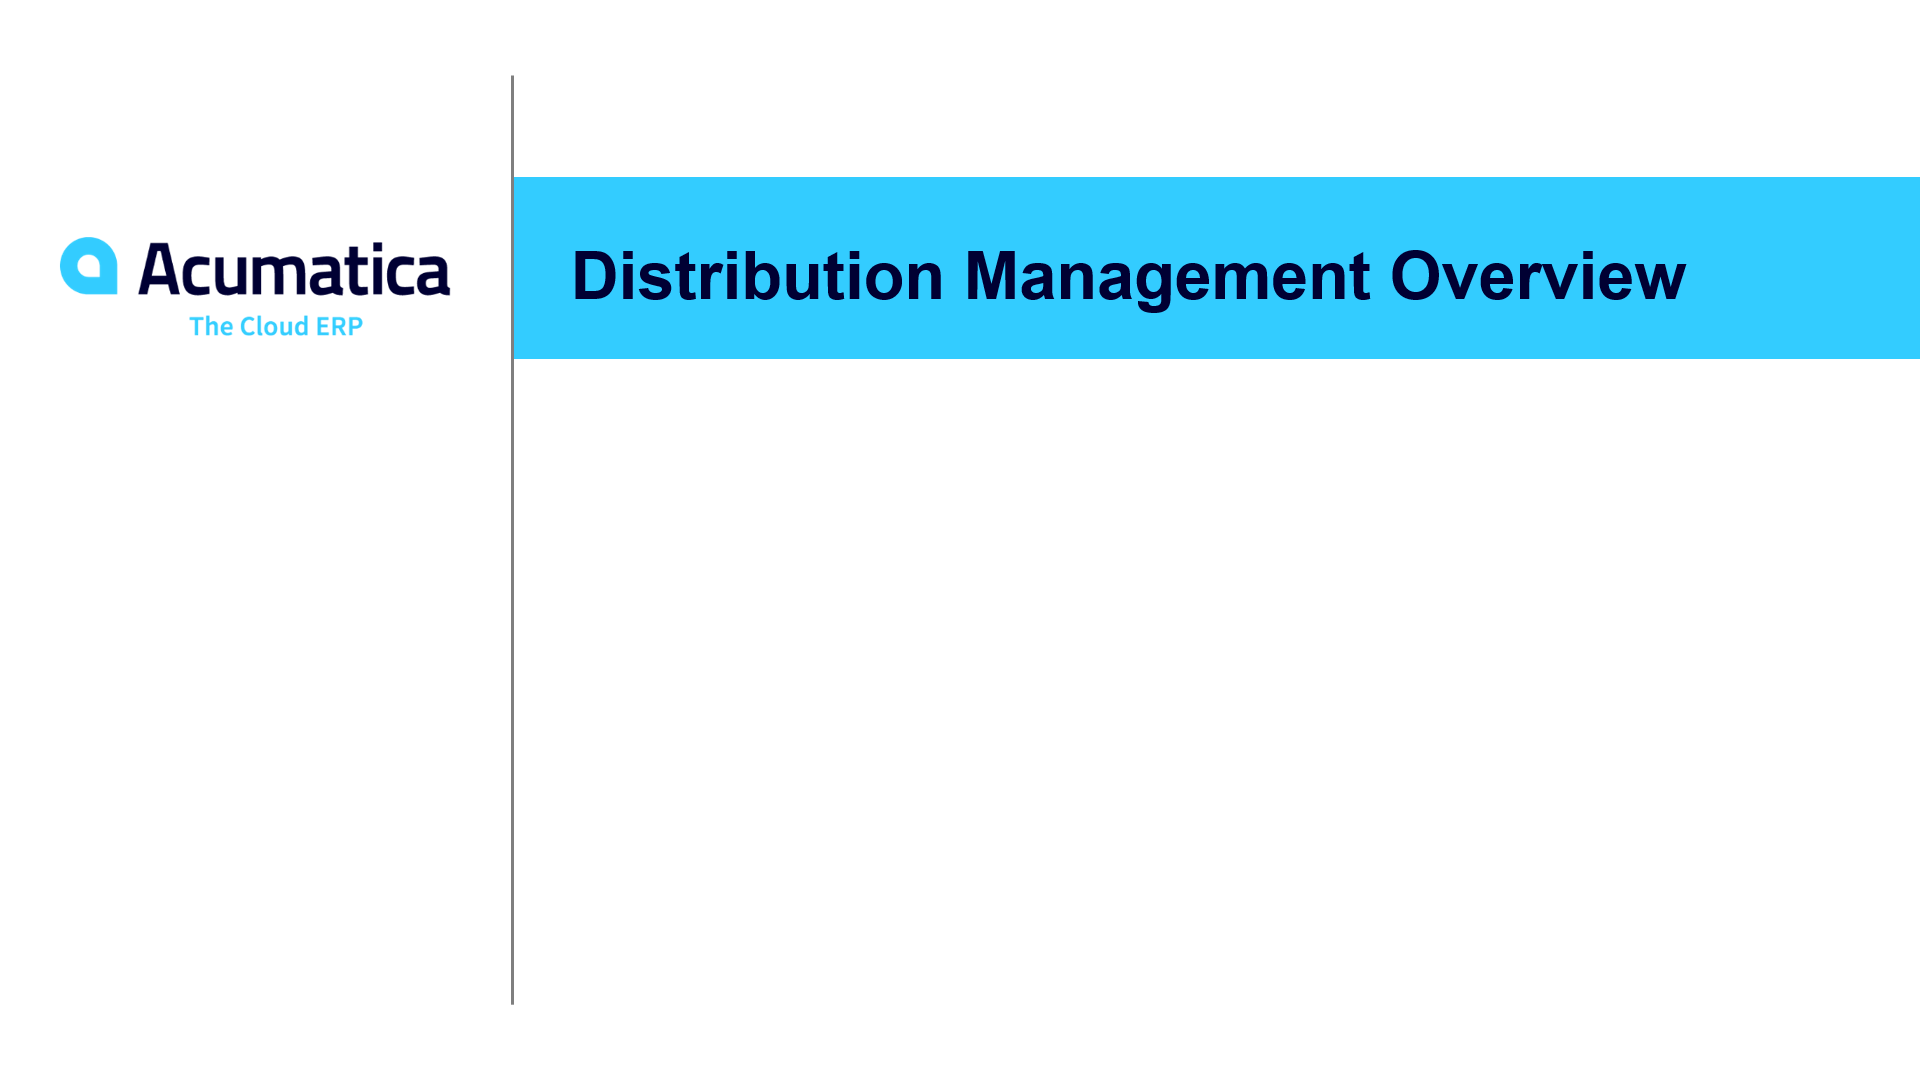 Distribution Management Overview